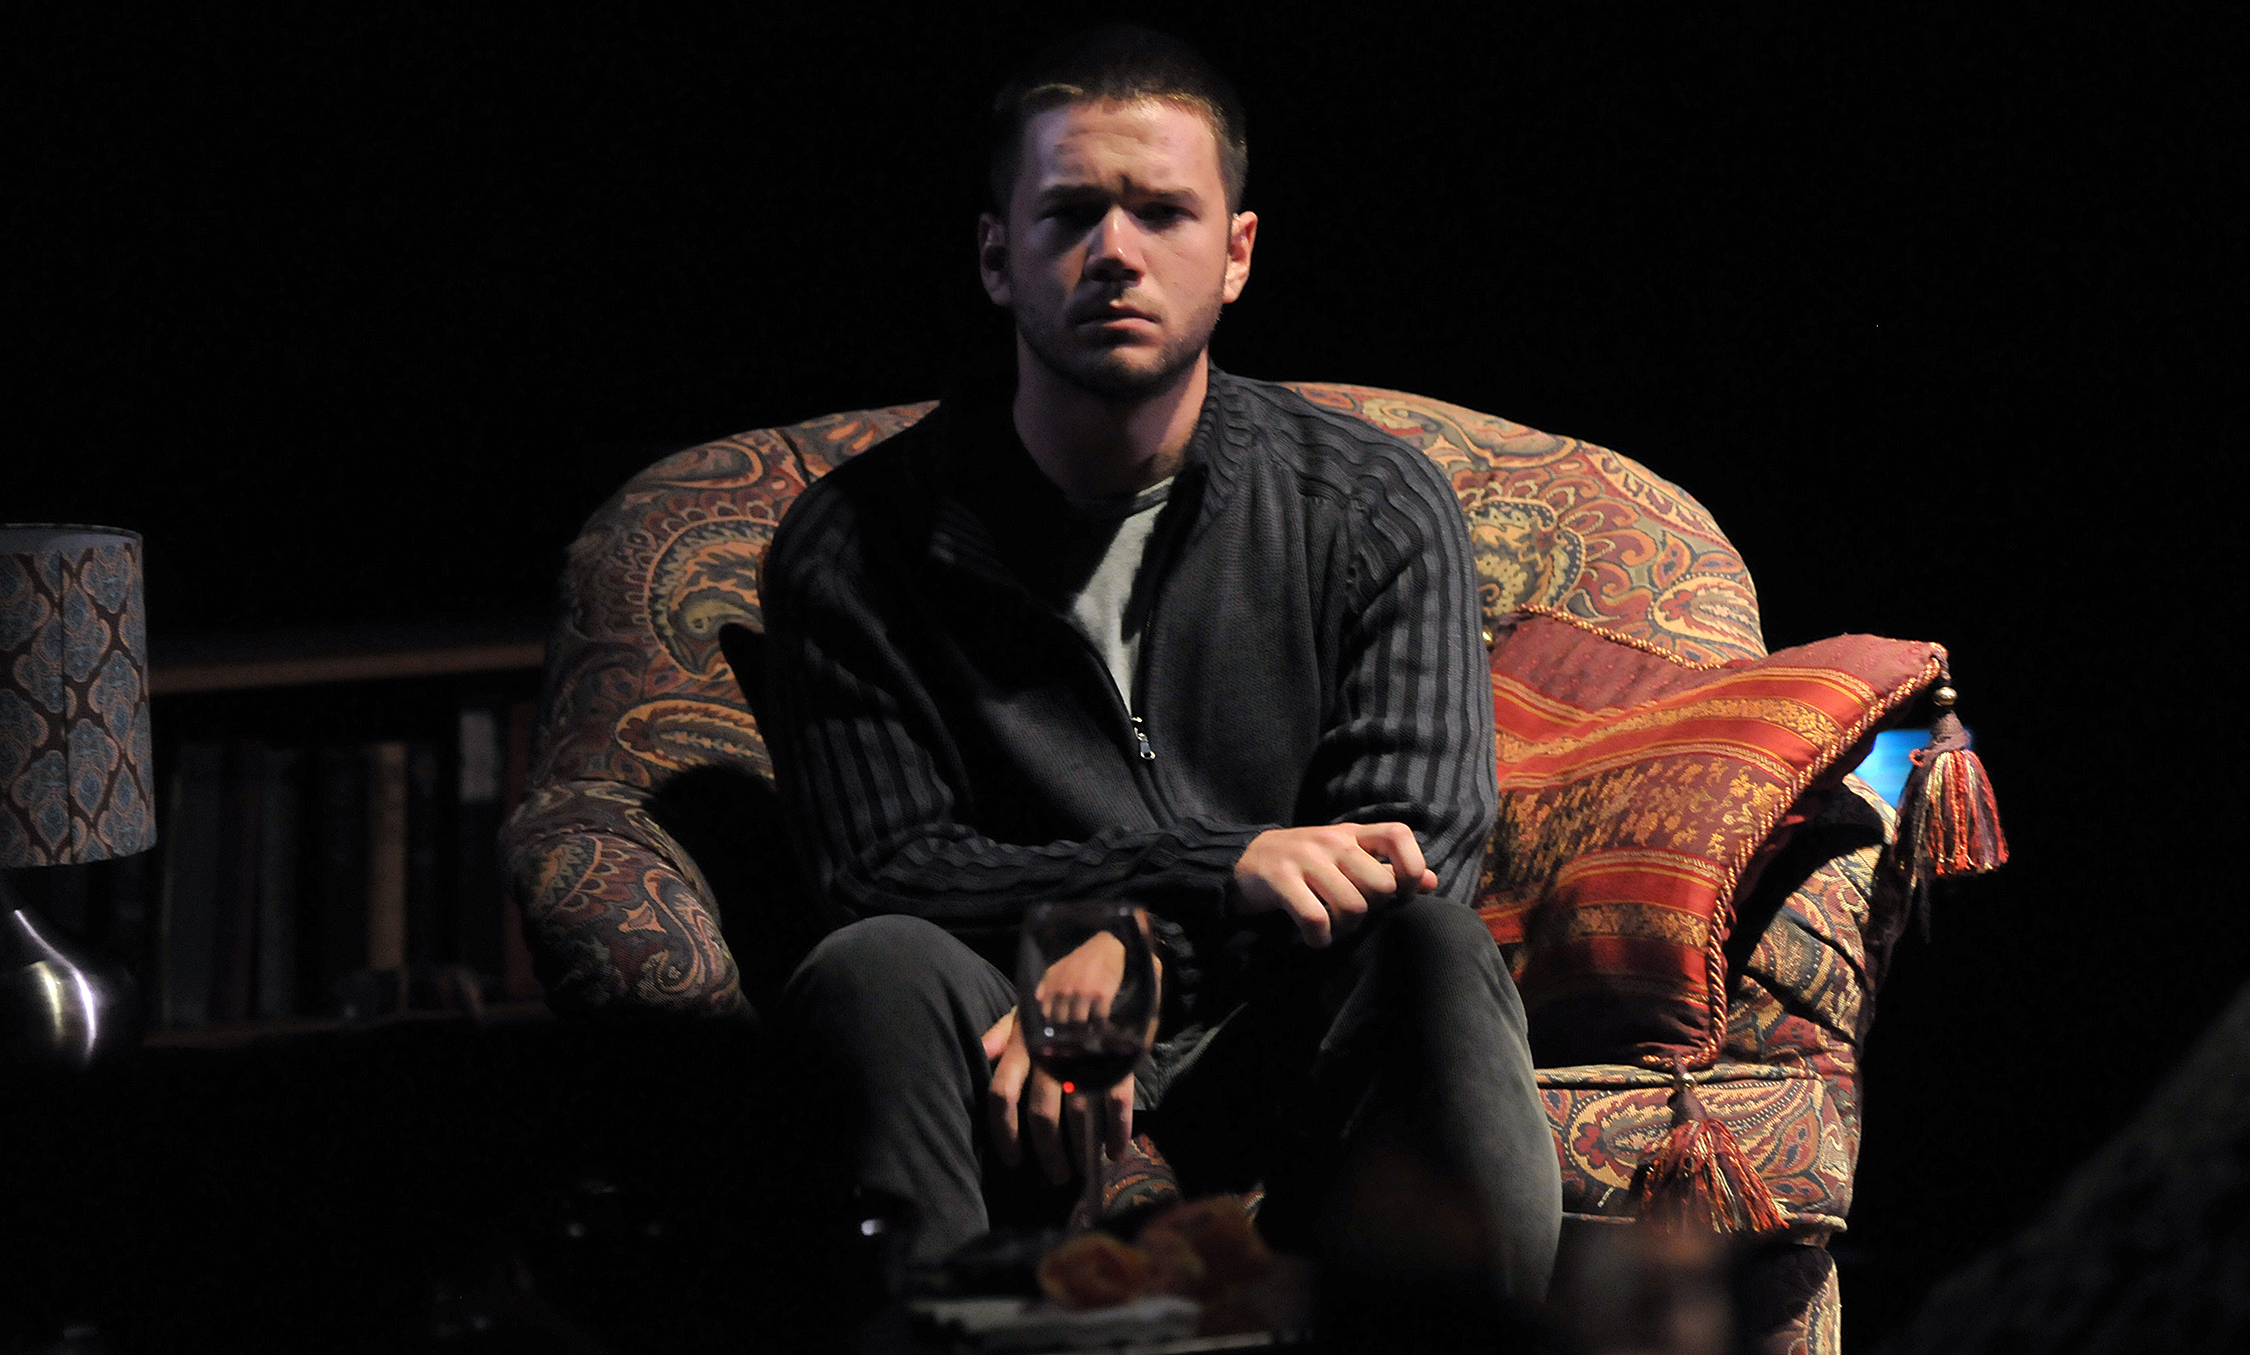 James Caverly as Billy in the SpeakEasy Stage Company production of TRIBES directed by M. Bevin O'Gara. Photo: Craig Bailey / Perspective Photo